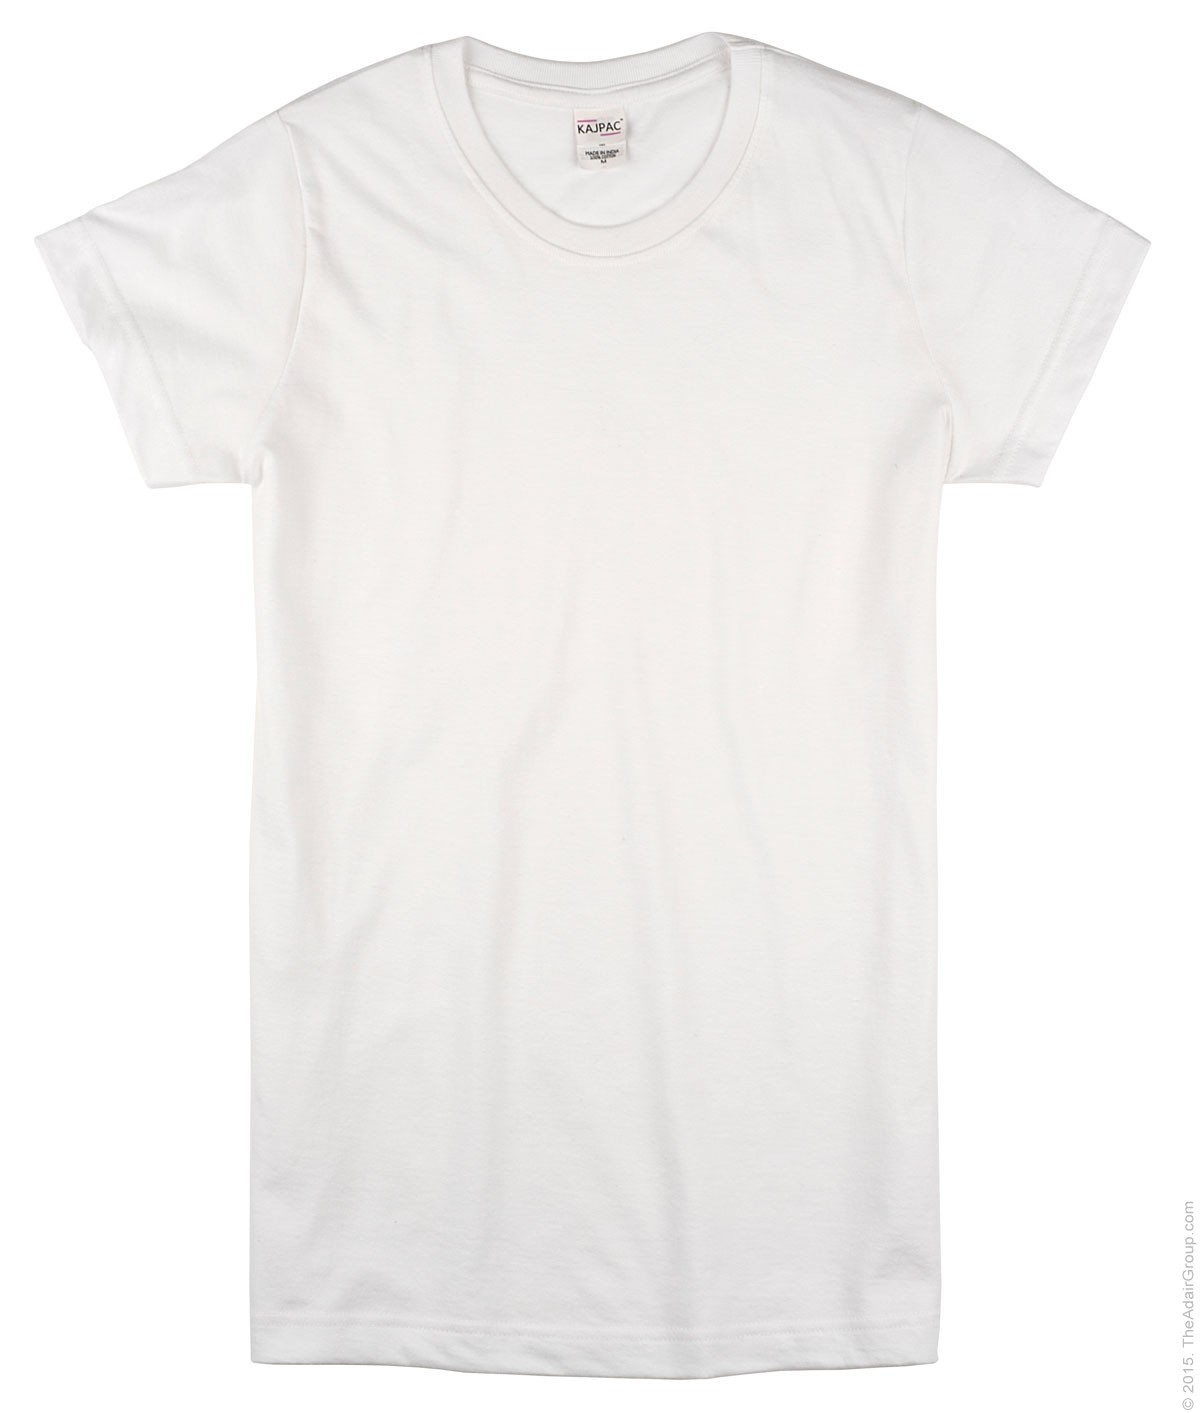 Plain White Womens Shirt Artee Shirt